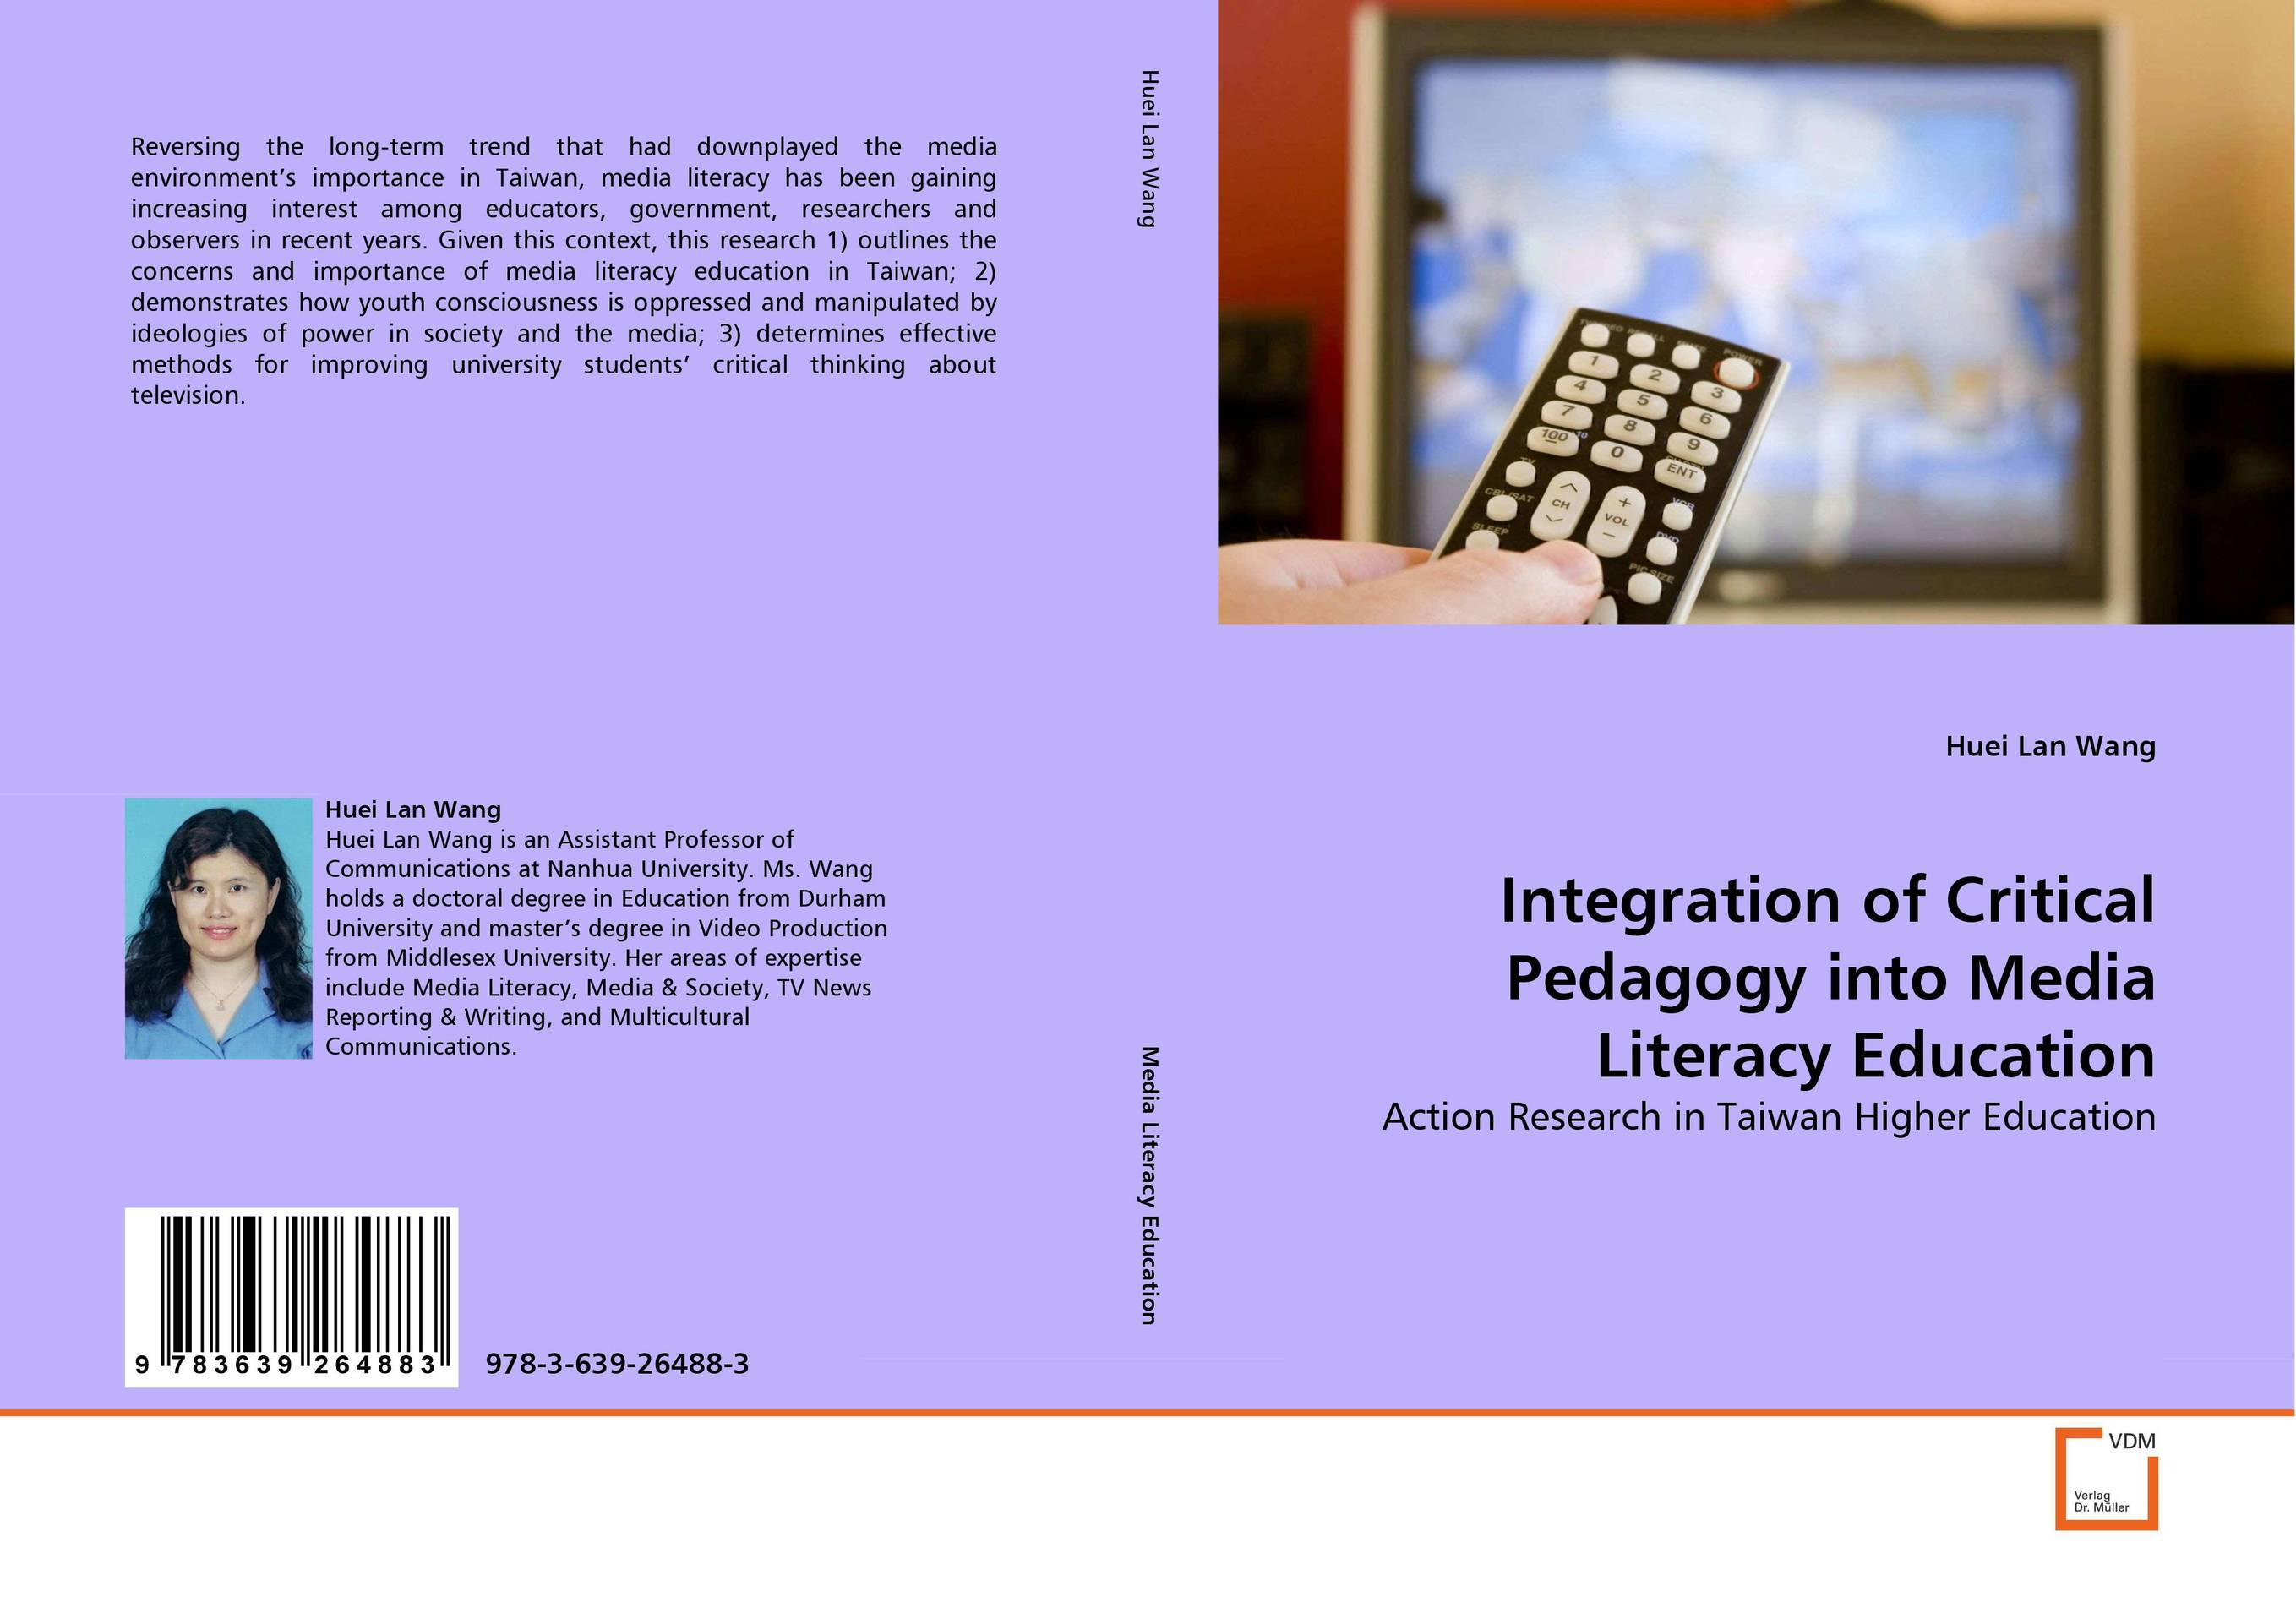 Integration of Critical Pedagogy into Media Literacy Education